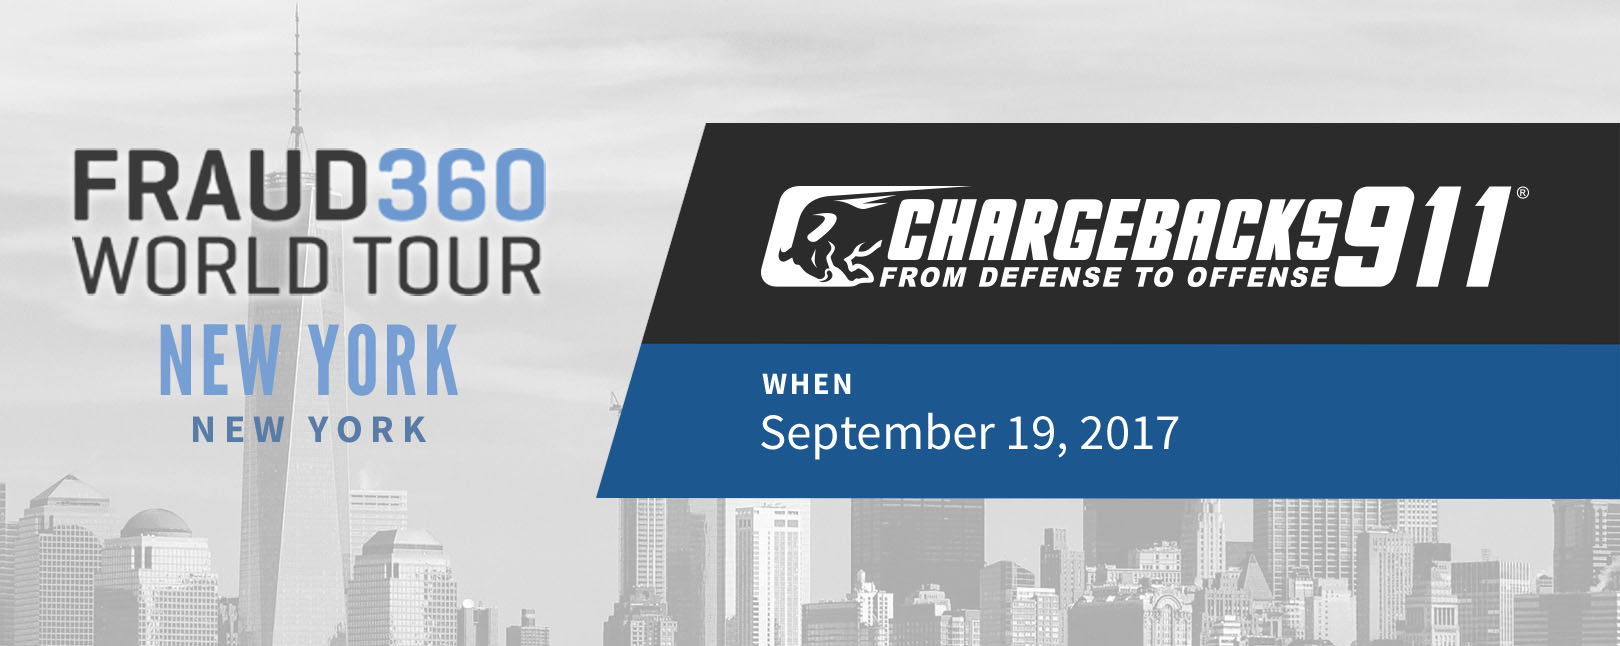 Chargebacks911 Fraud360 Tour - New York